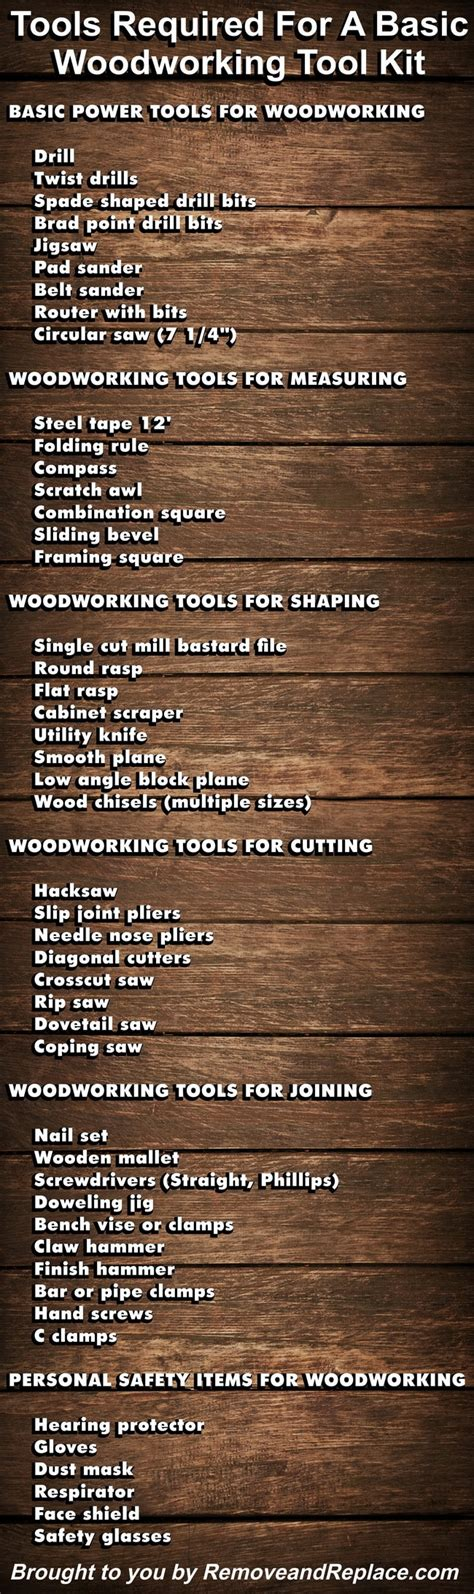 woodworking tool list tools required for a basic woodworking tool kit